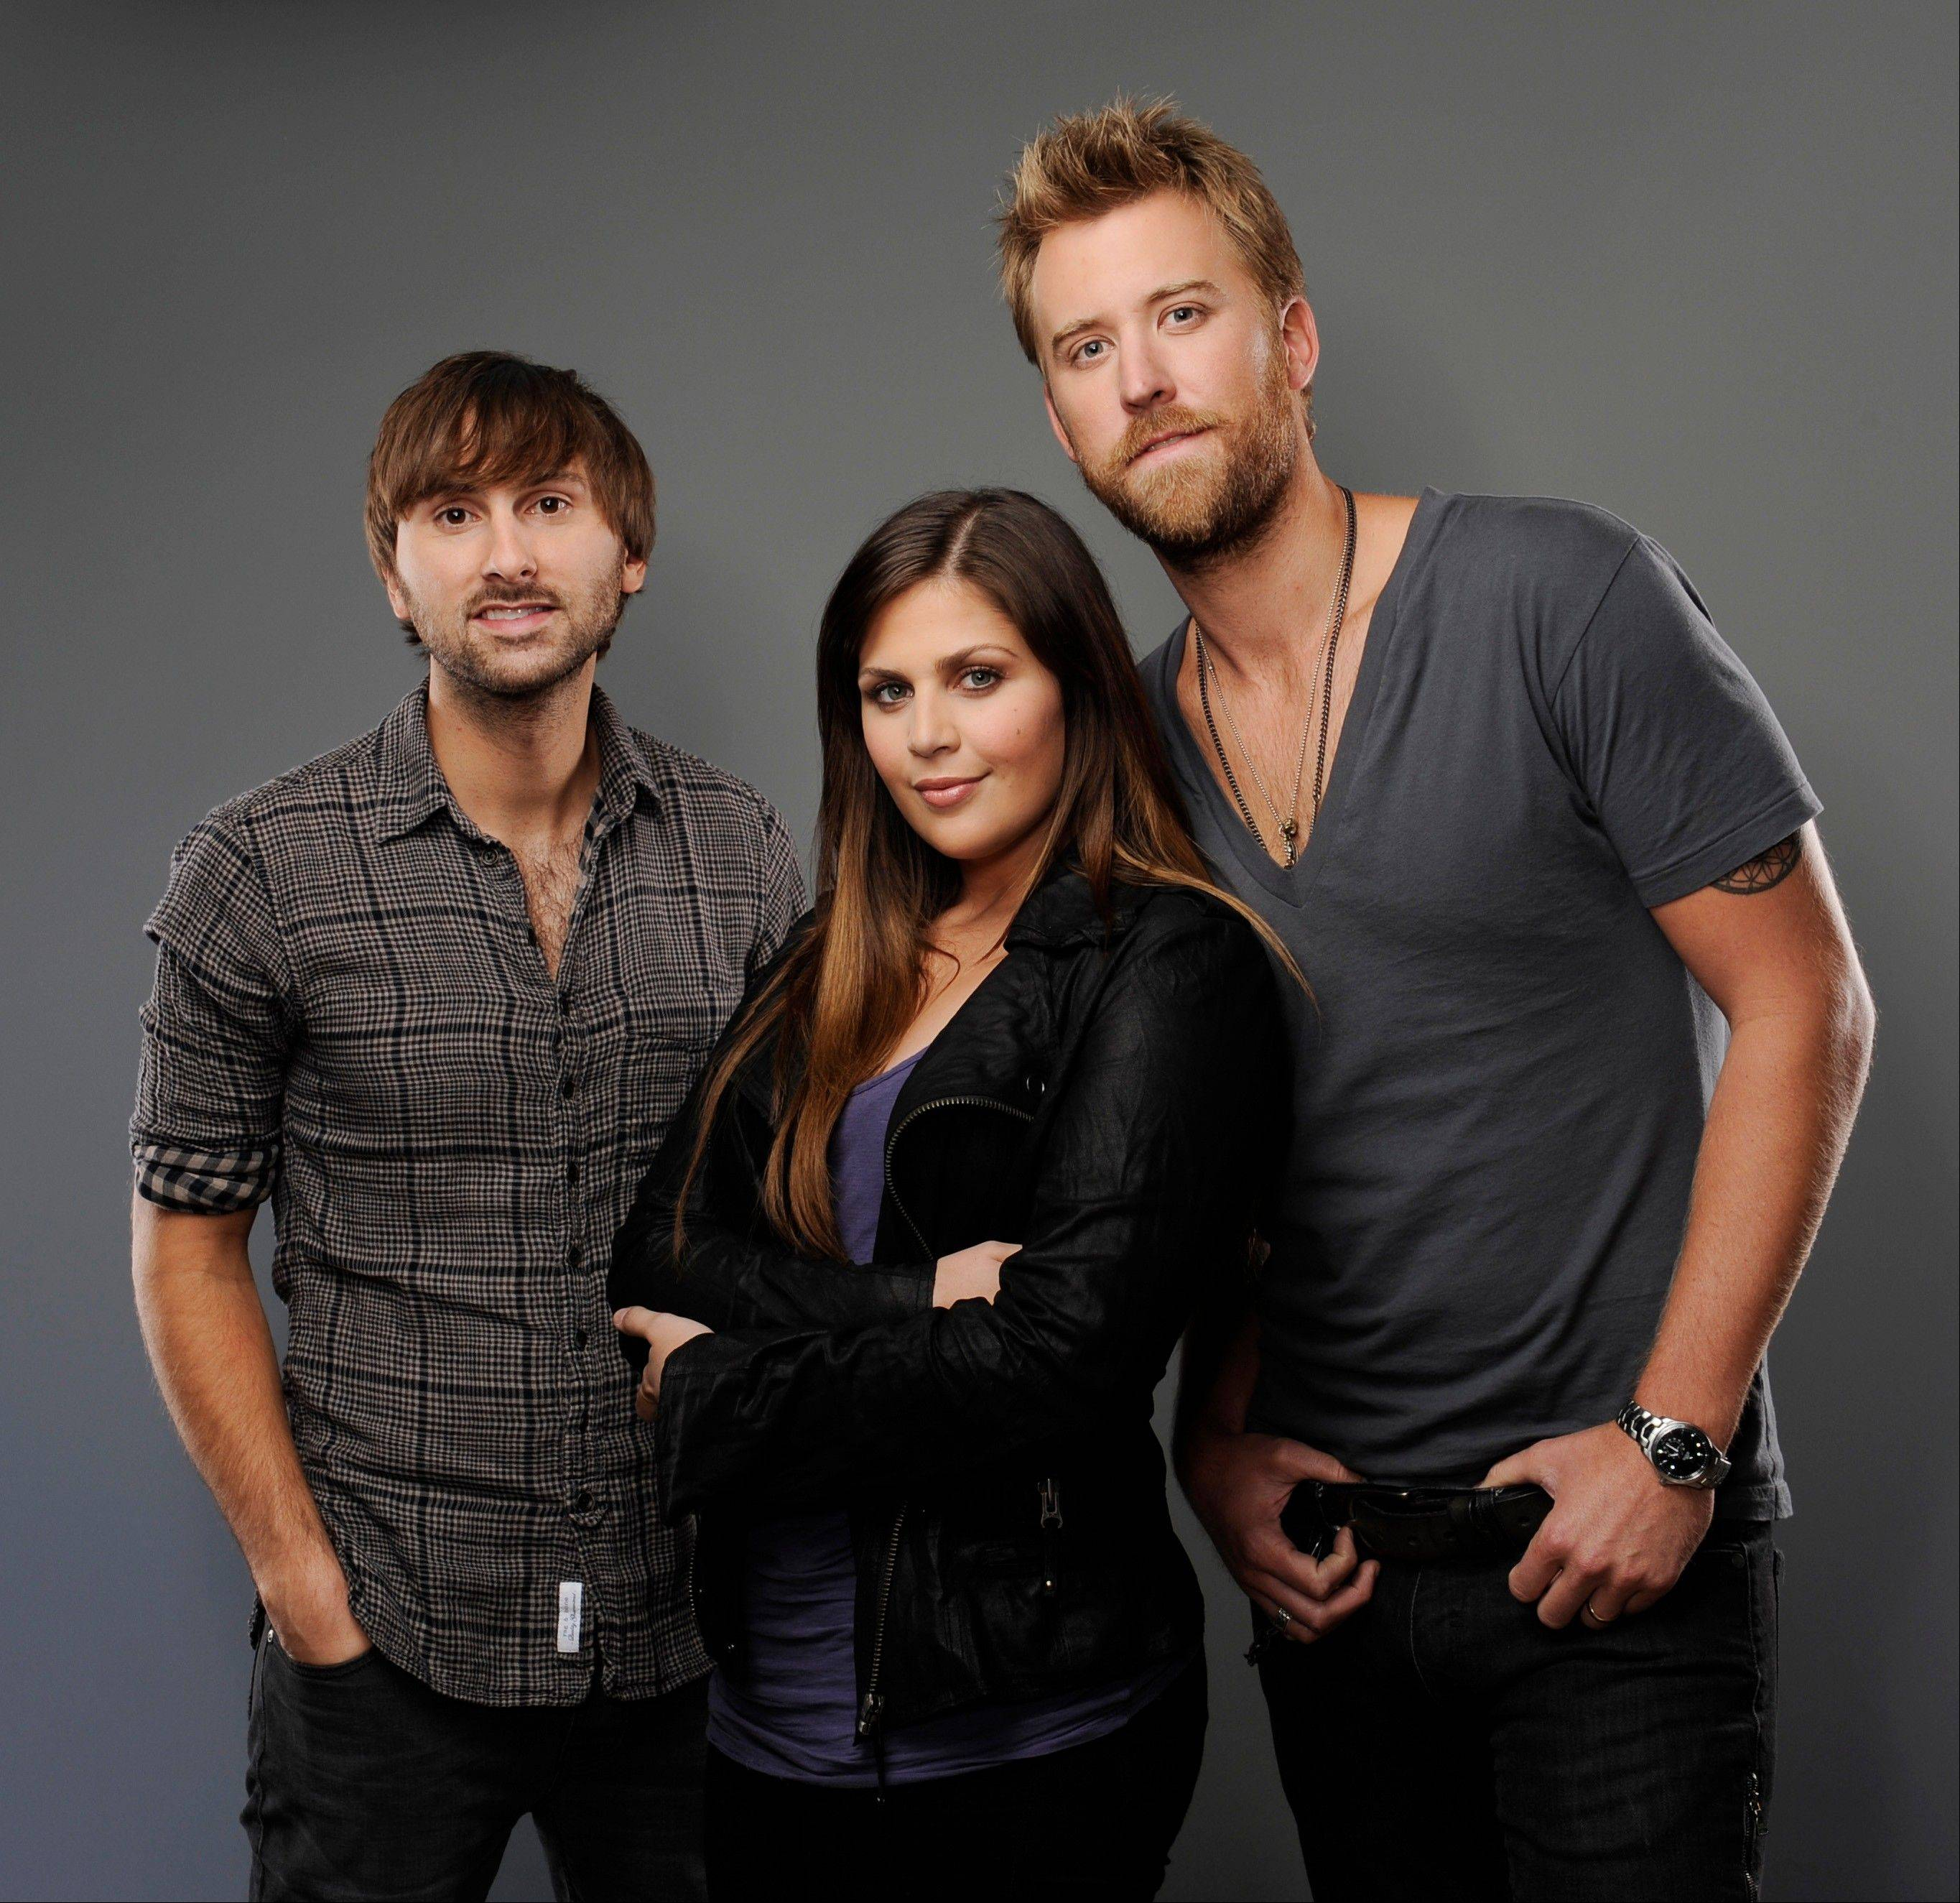 Lady Antebellum -- consisting of Dave Haywood, Hillary Scott and Charles Kelley -- will play the Allstate Arena in Rosemont on Nov. 15.